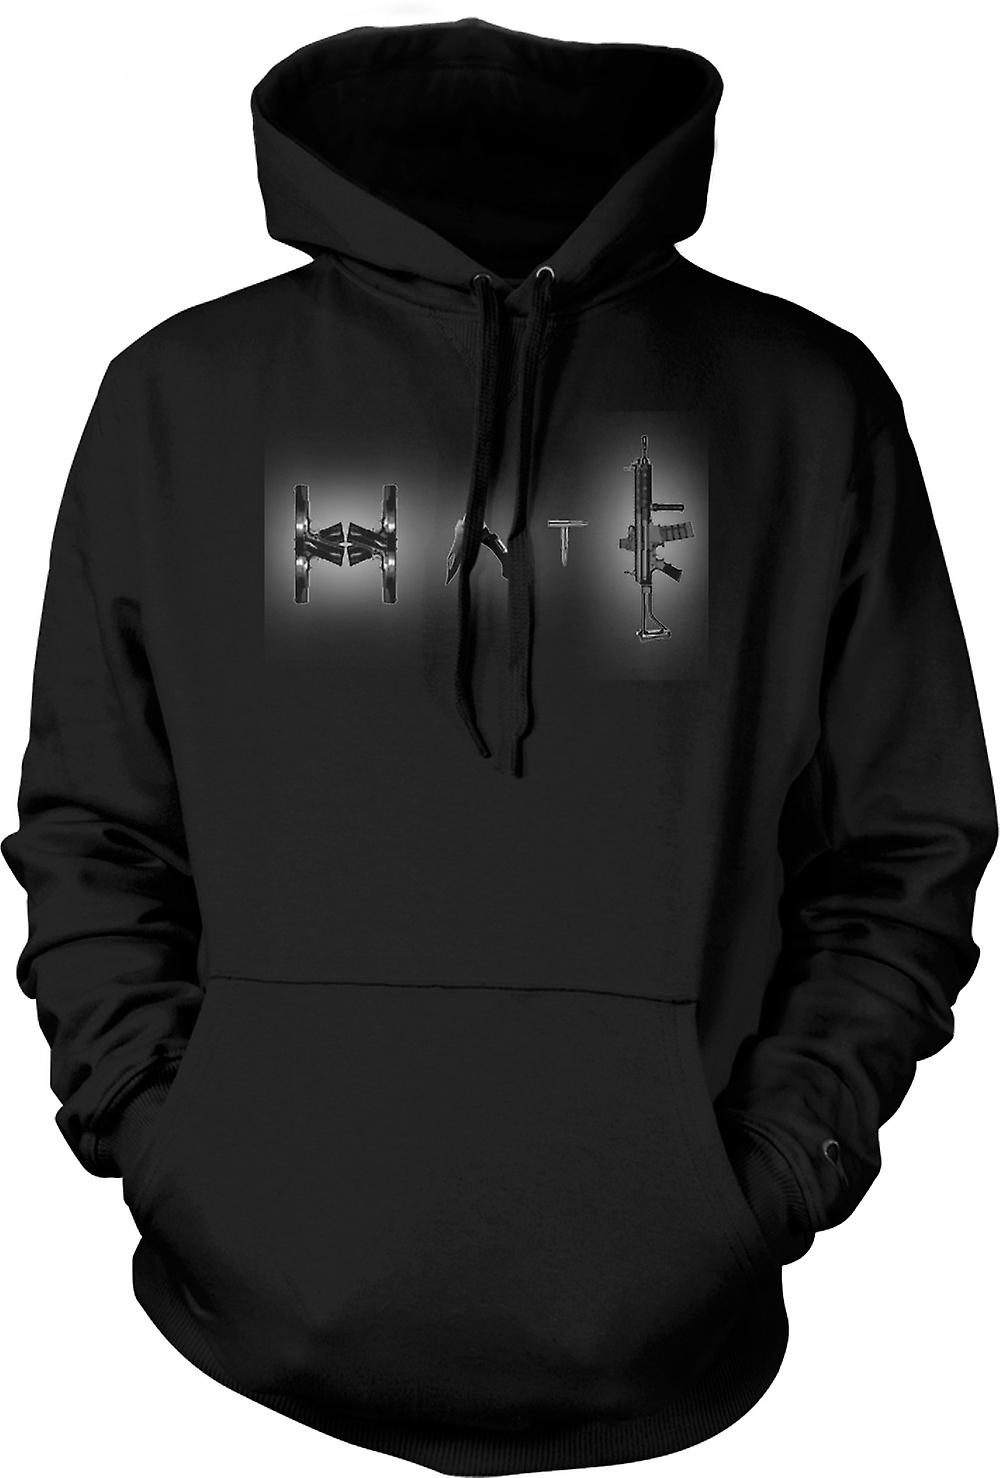 Mens Hoodie - Hate - Anti Gun & Weapon